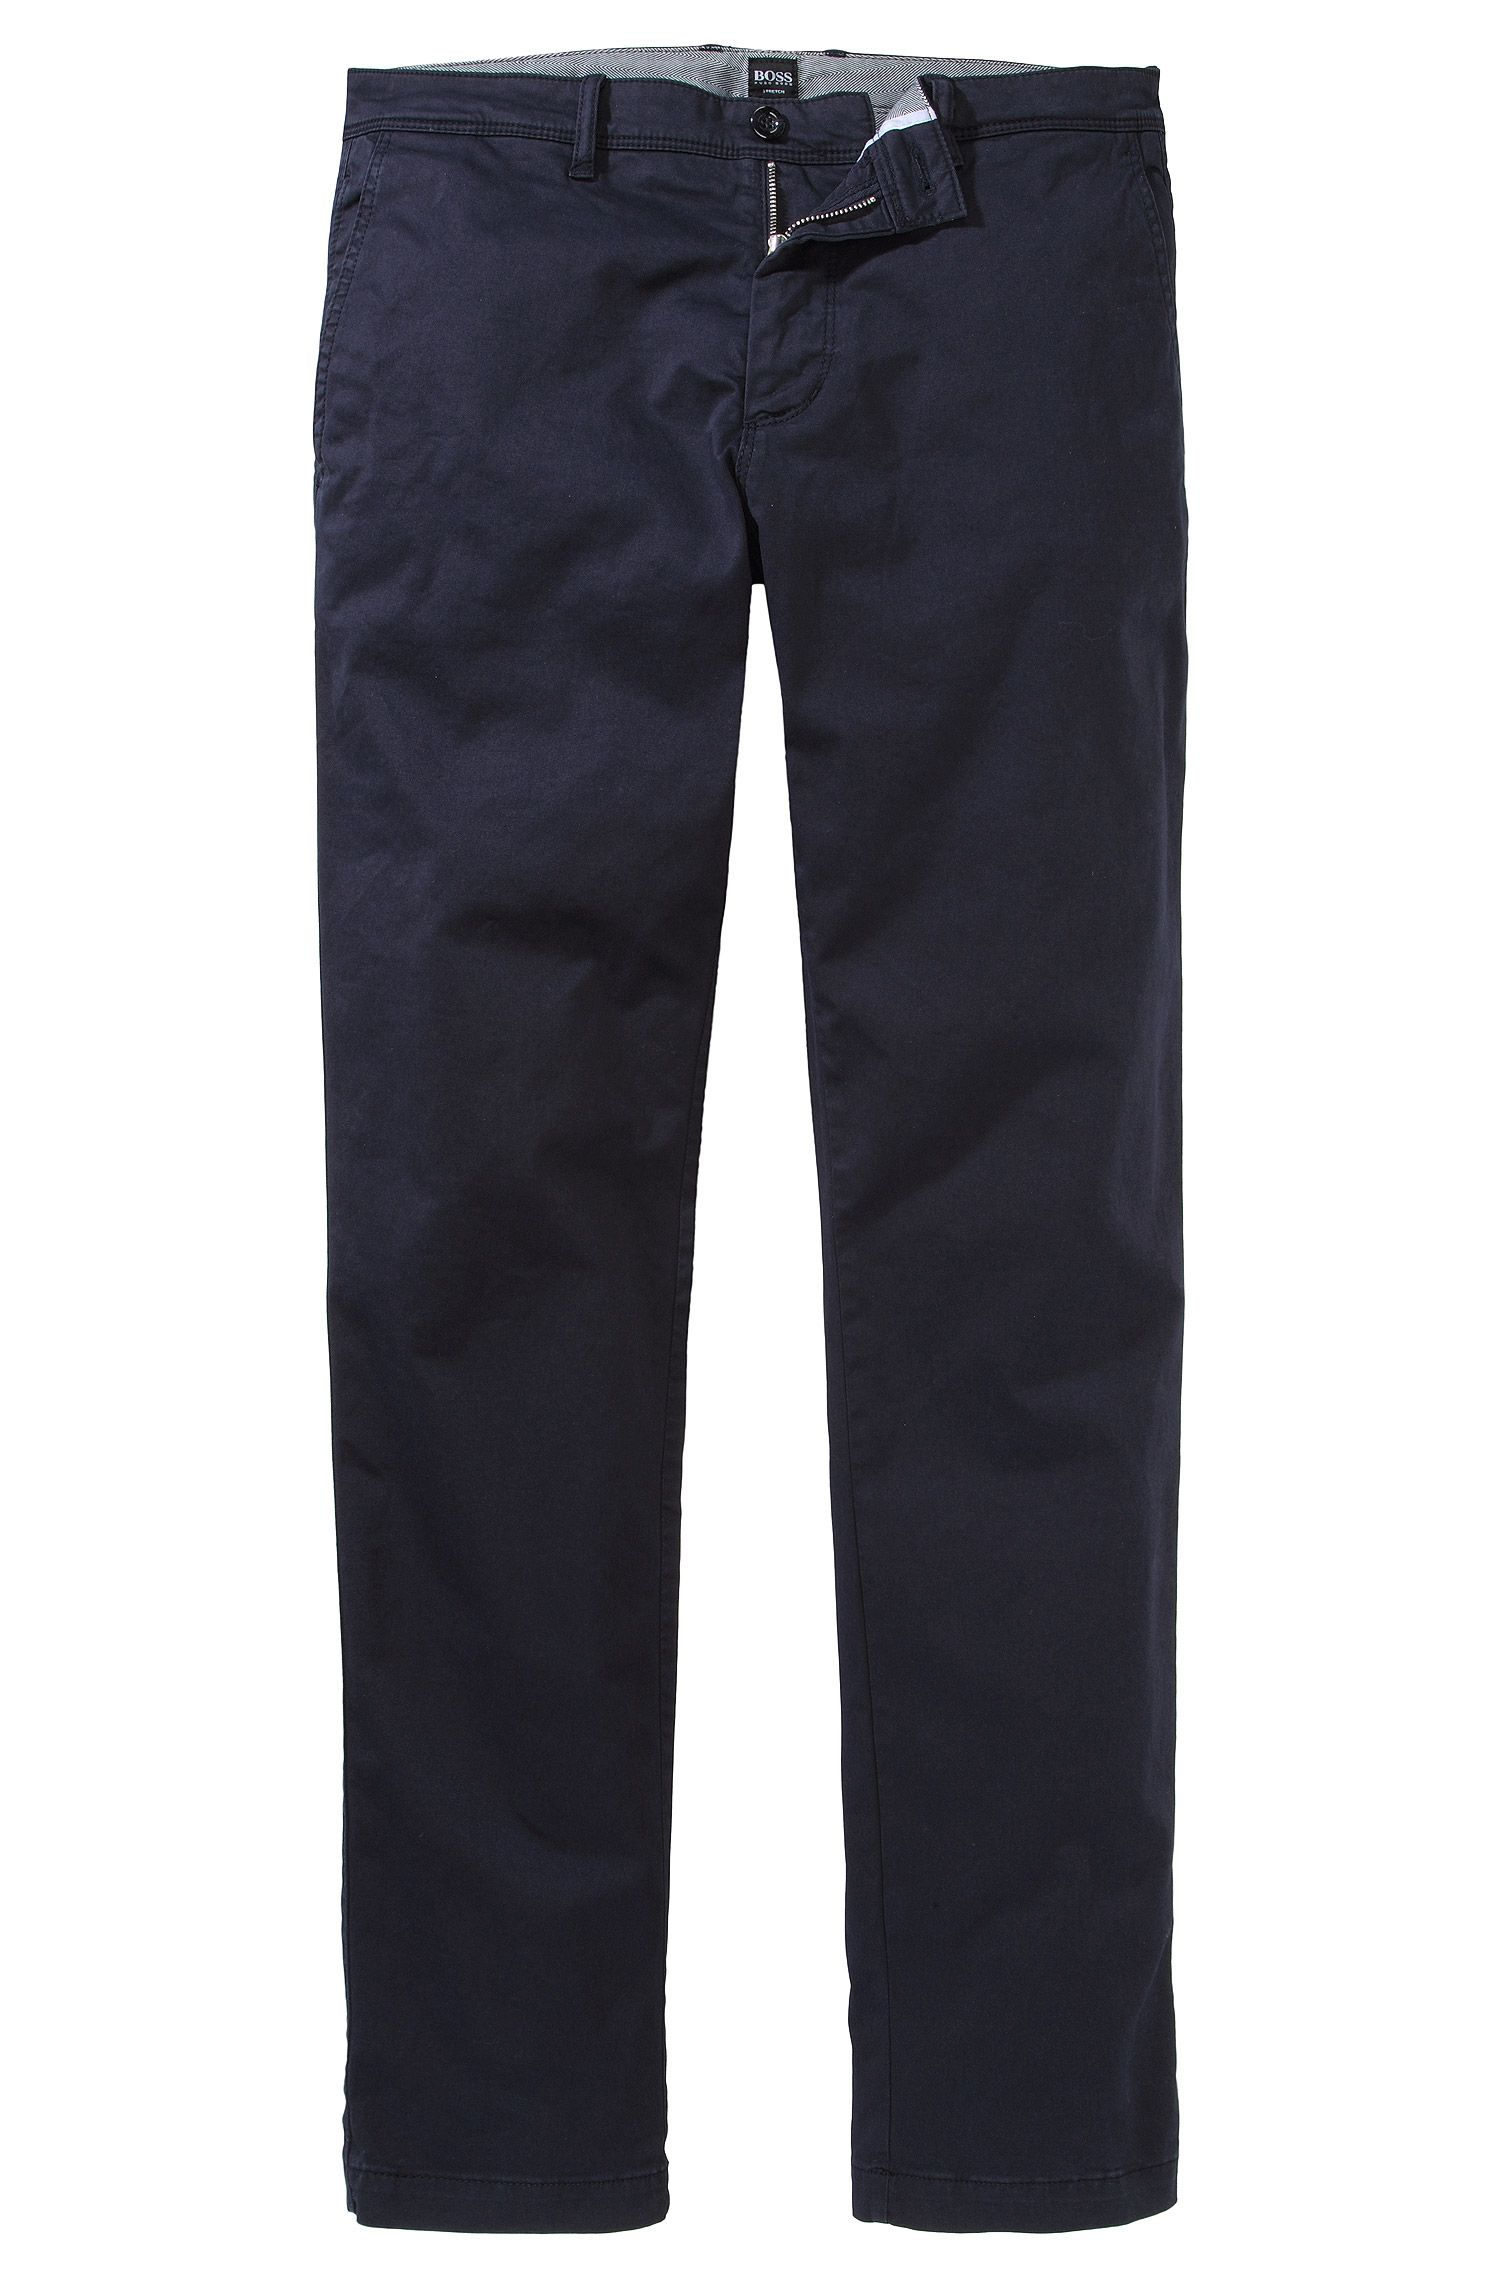 Pantalon détente, Crigan2-D Modern Essentials